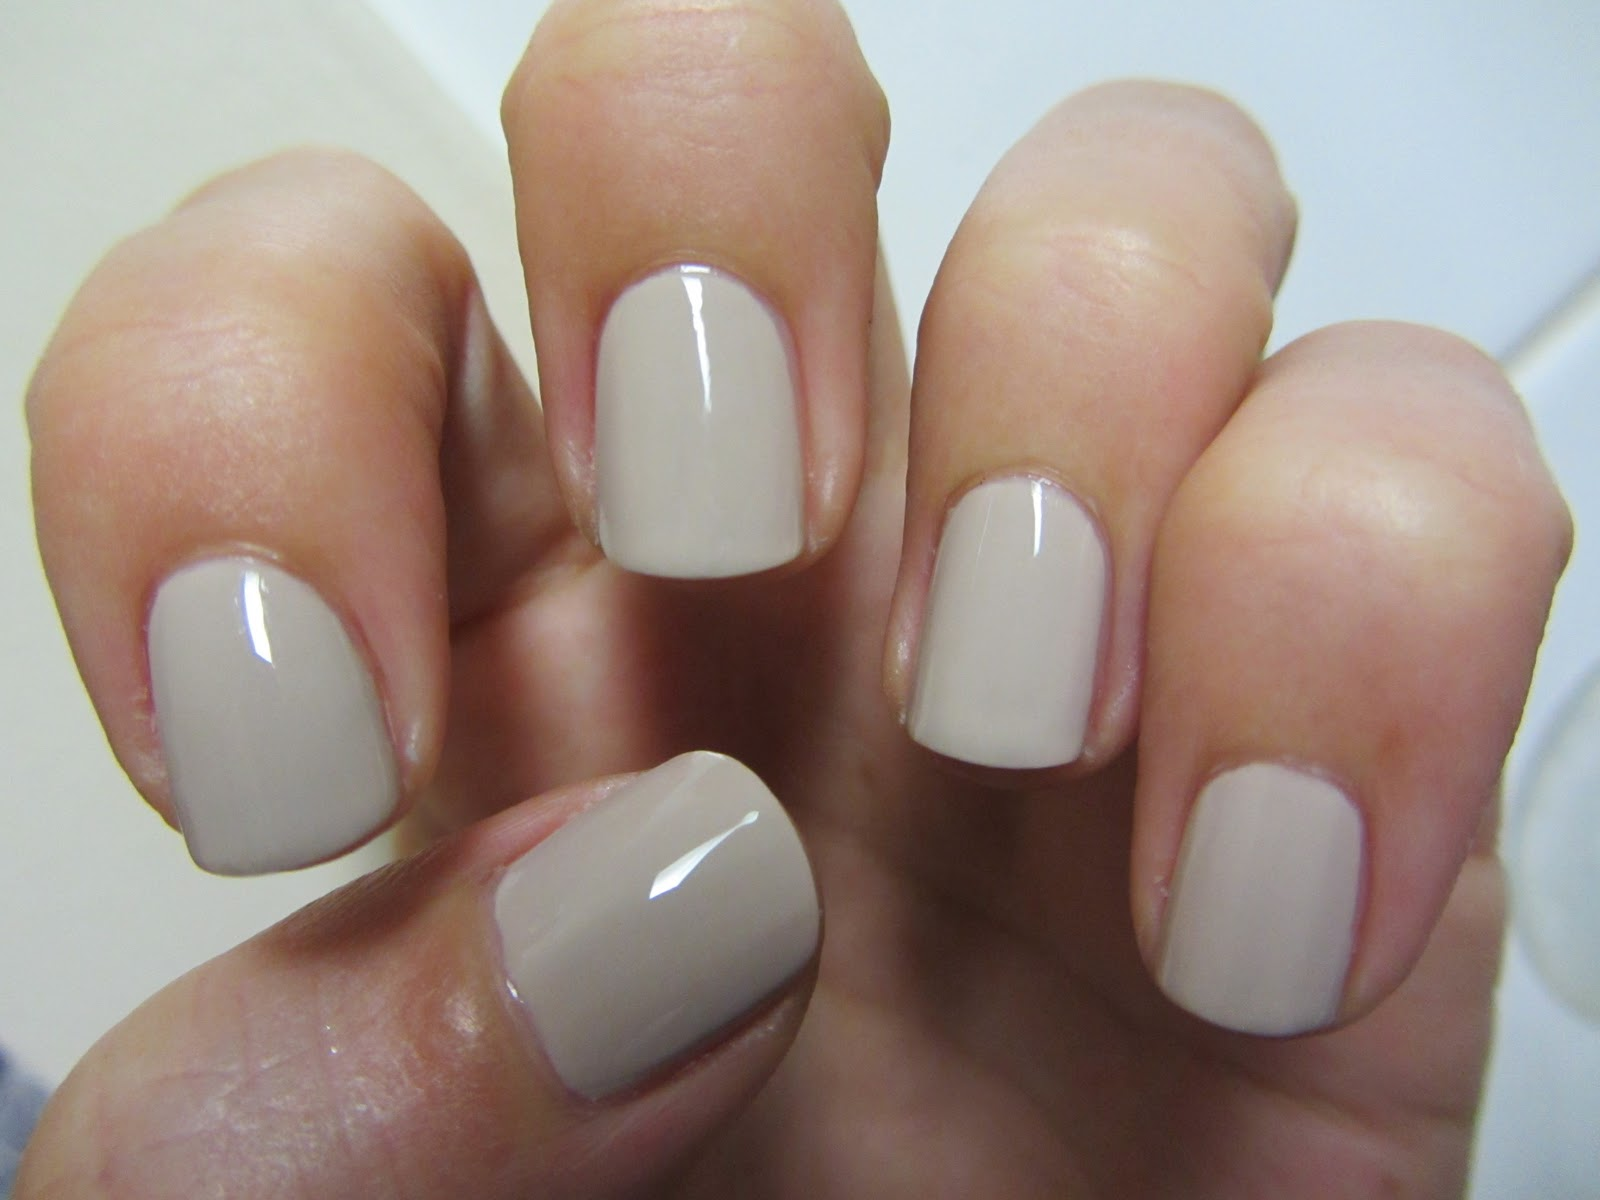 nails | To Be Bright | Page 3